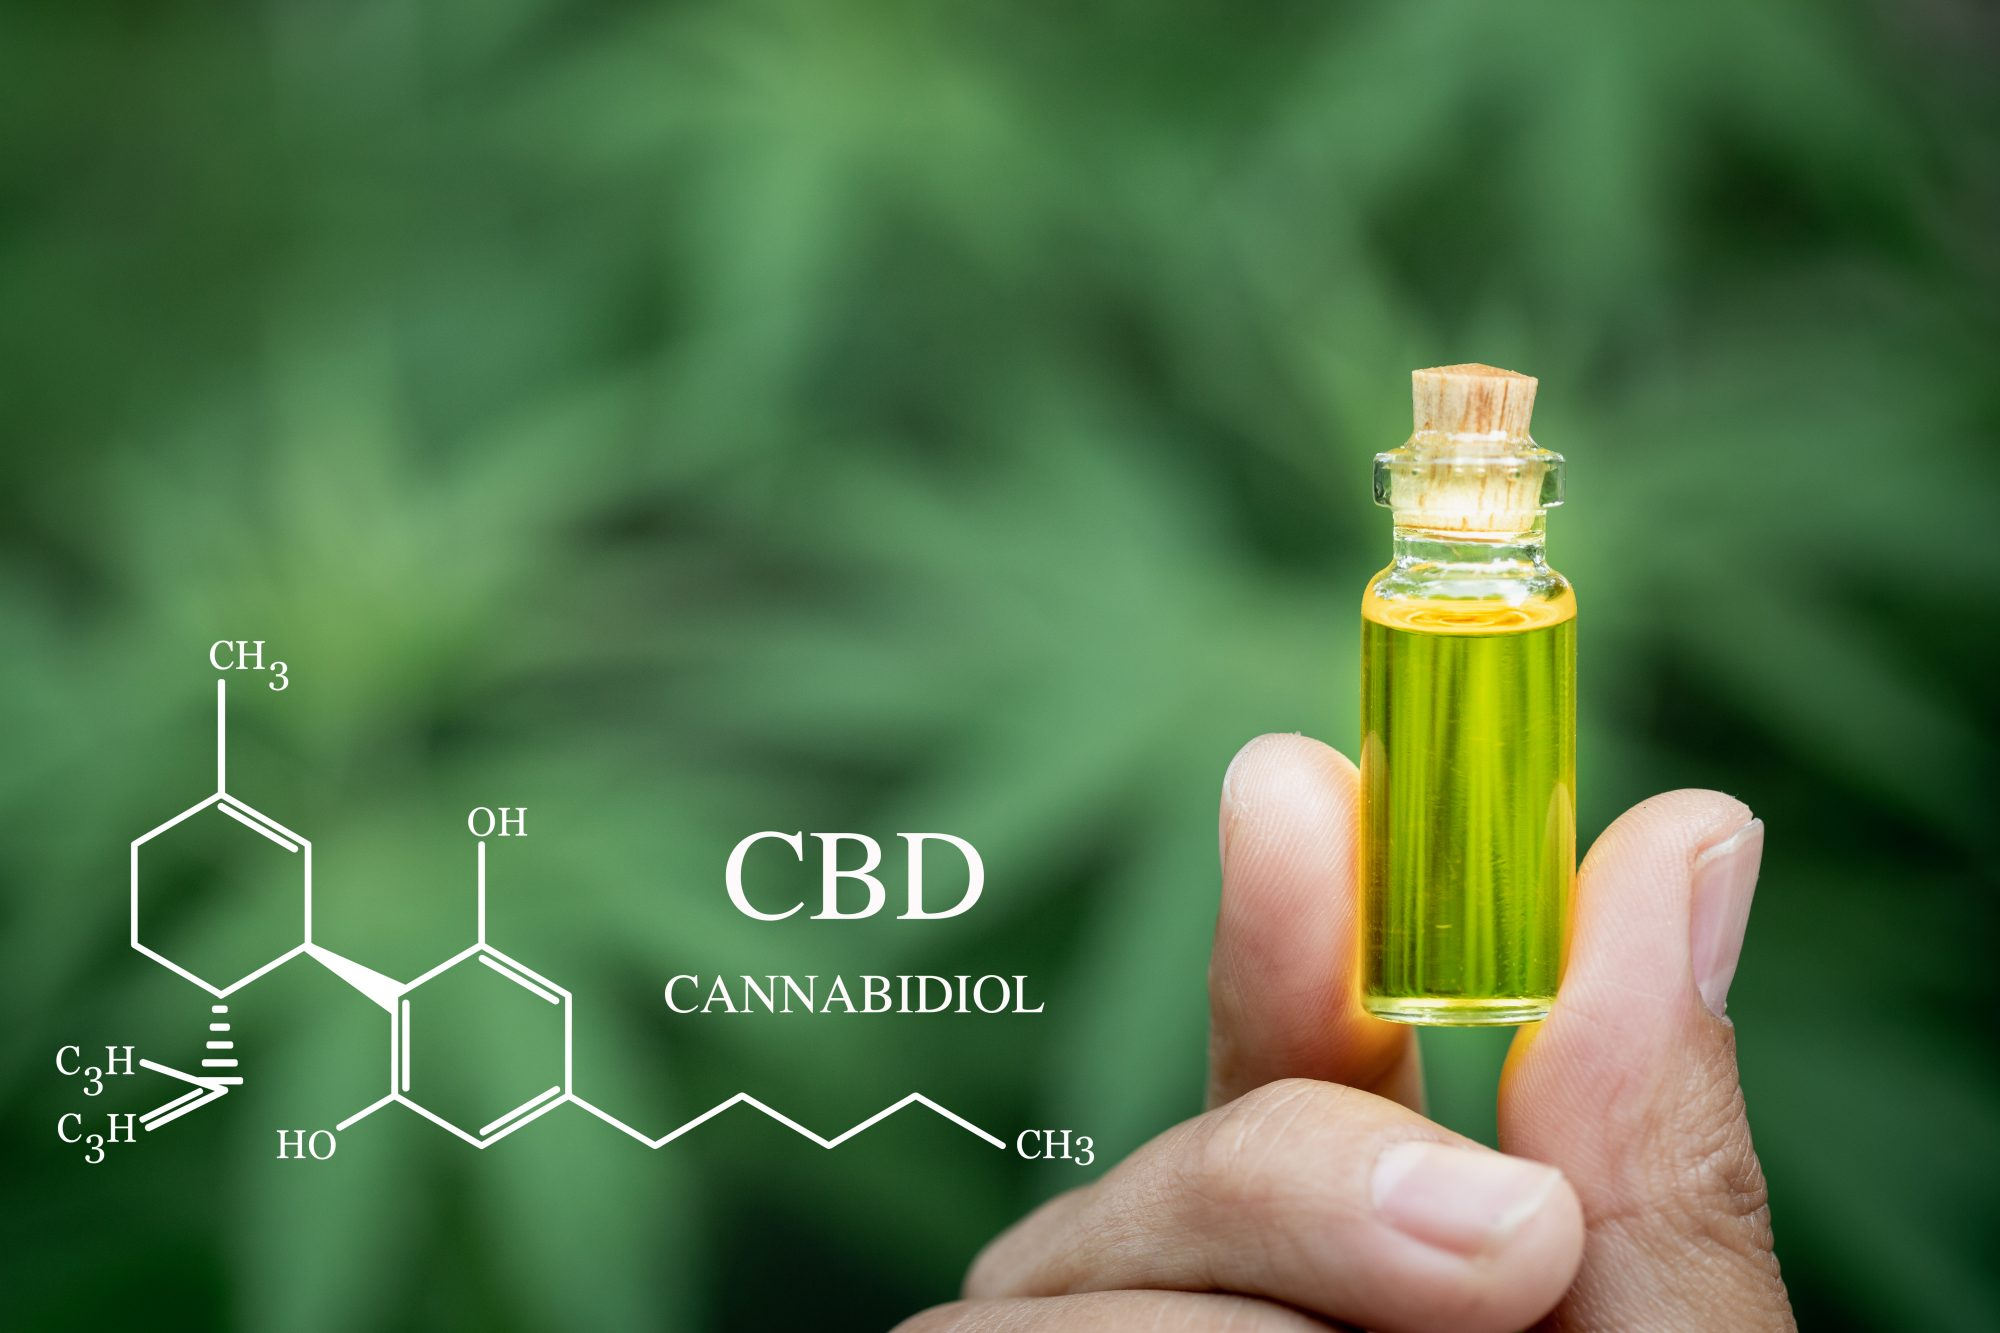 What is the difference between cannabidiol and THC?